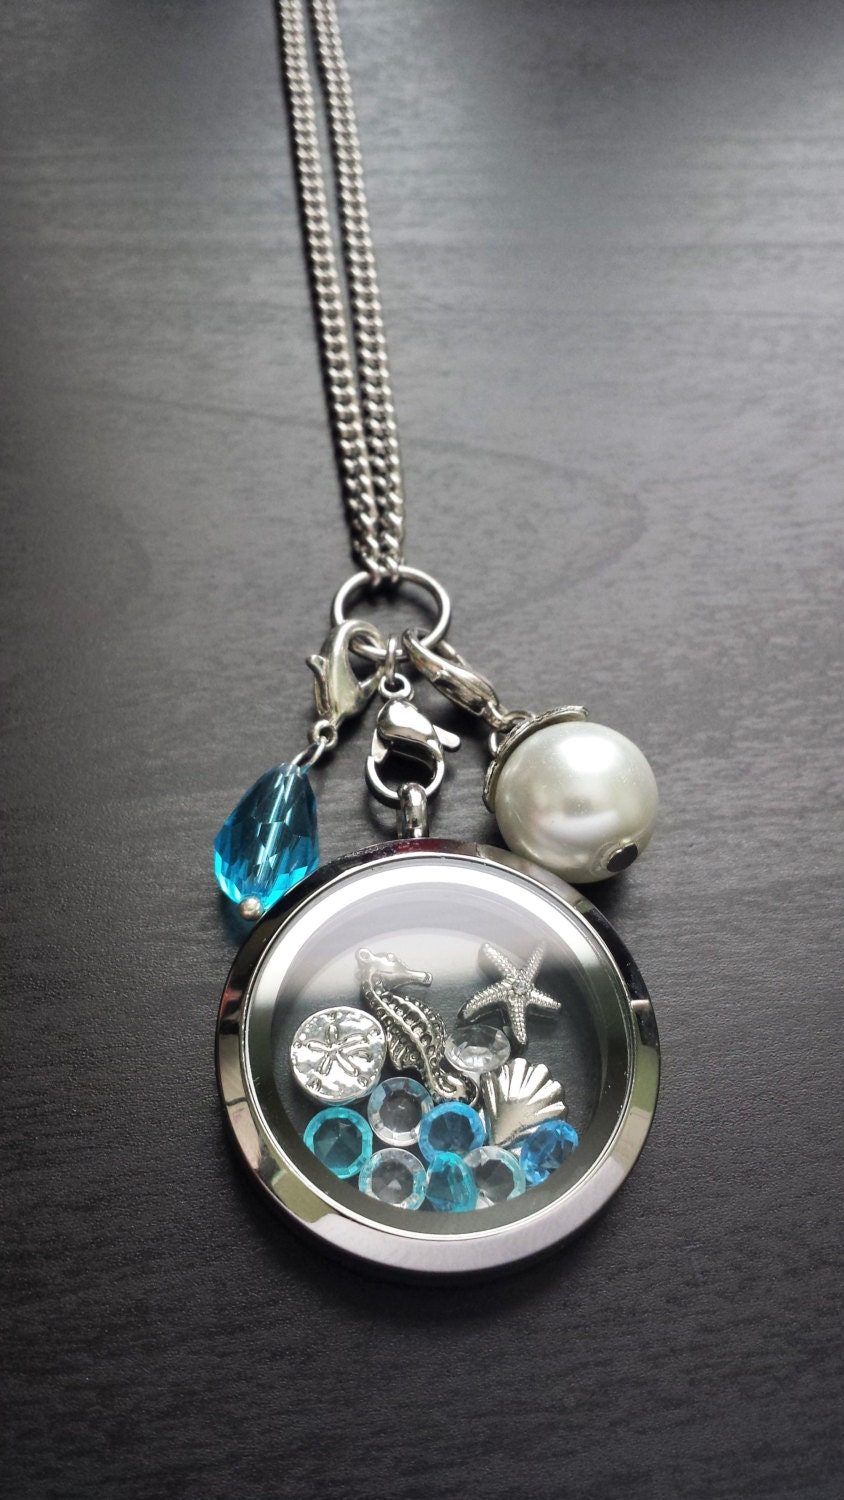 products necklace lockets one locket kingdom charm number teacher silver